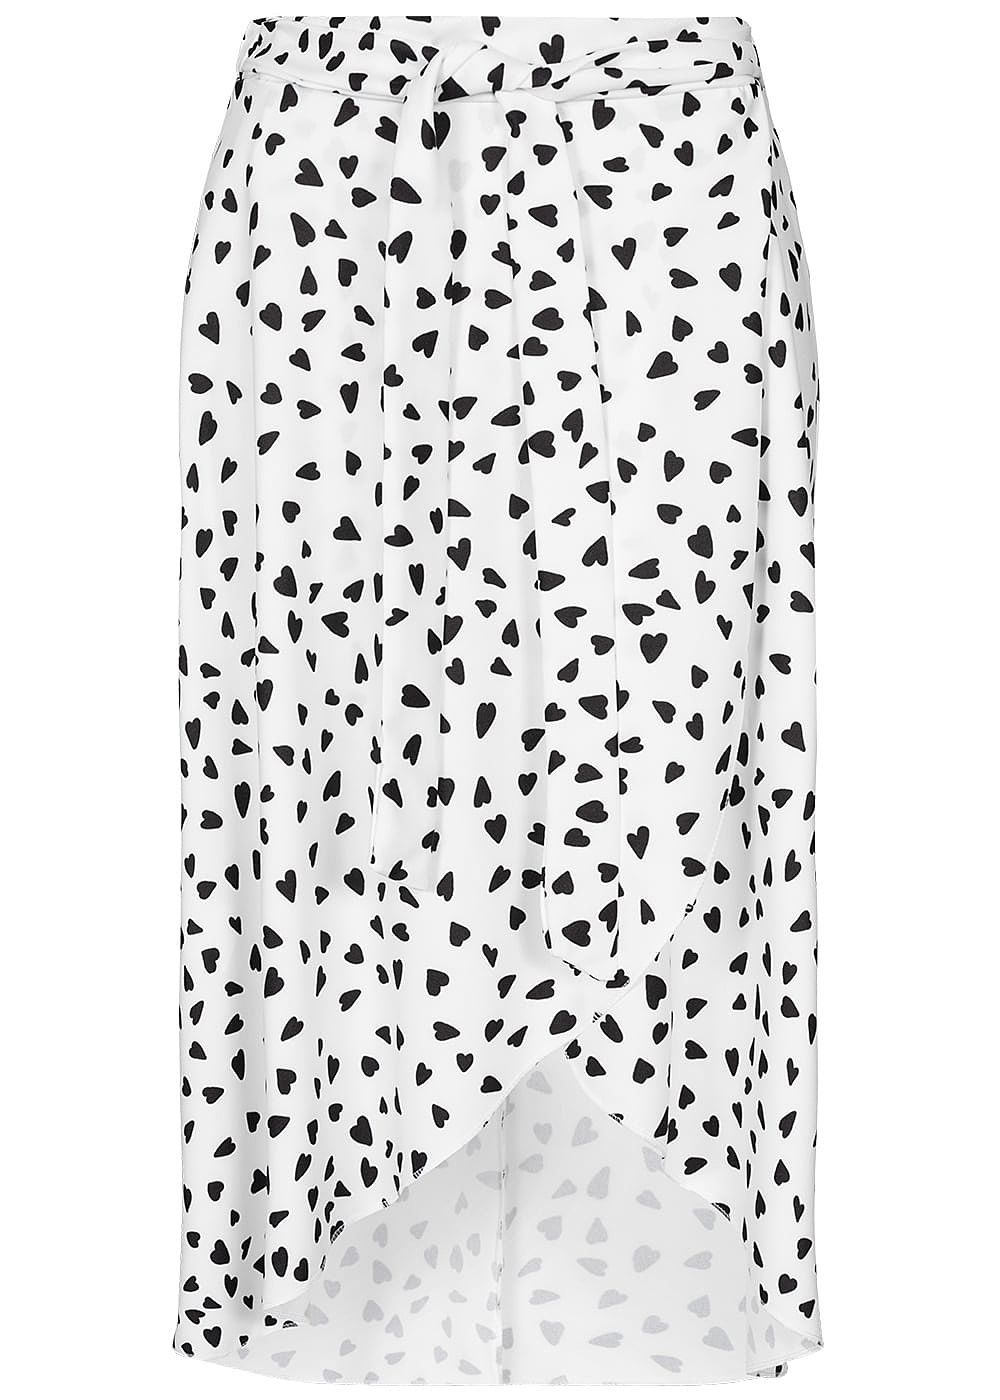 Styleboom Fashion Damen Wrapped Skirt Front Belt Hearts Print weiss schwarz - Art.-Nr.: 19036290